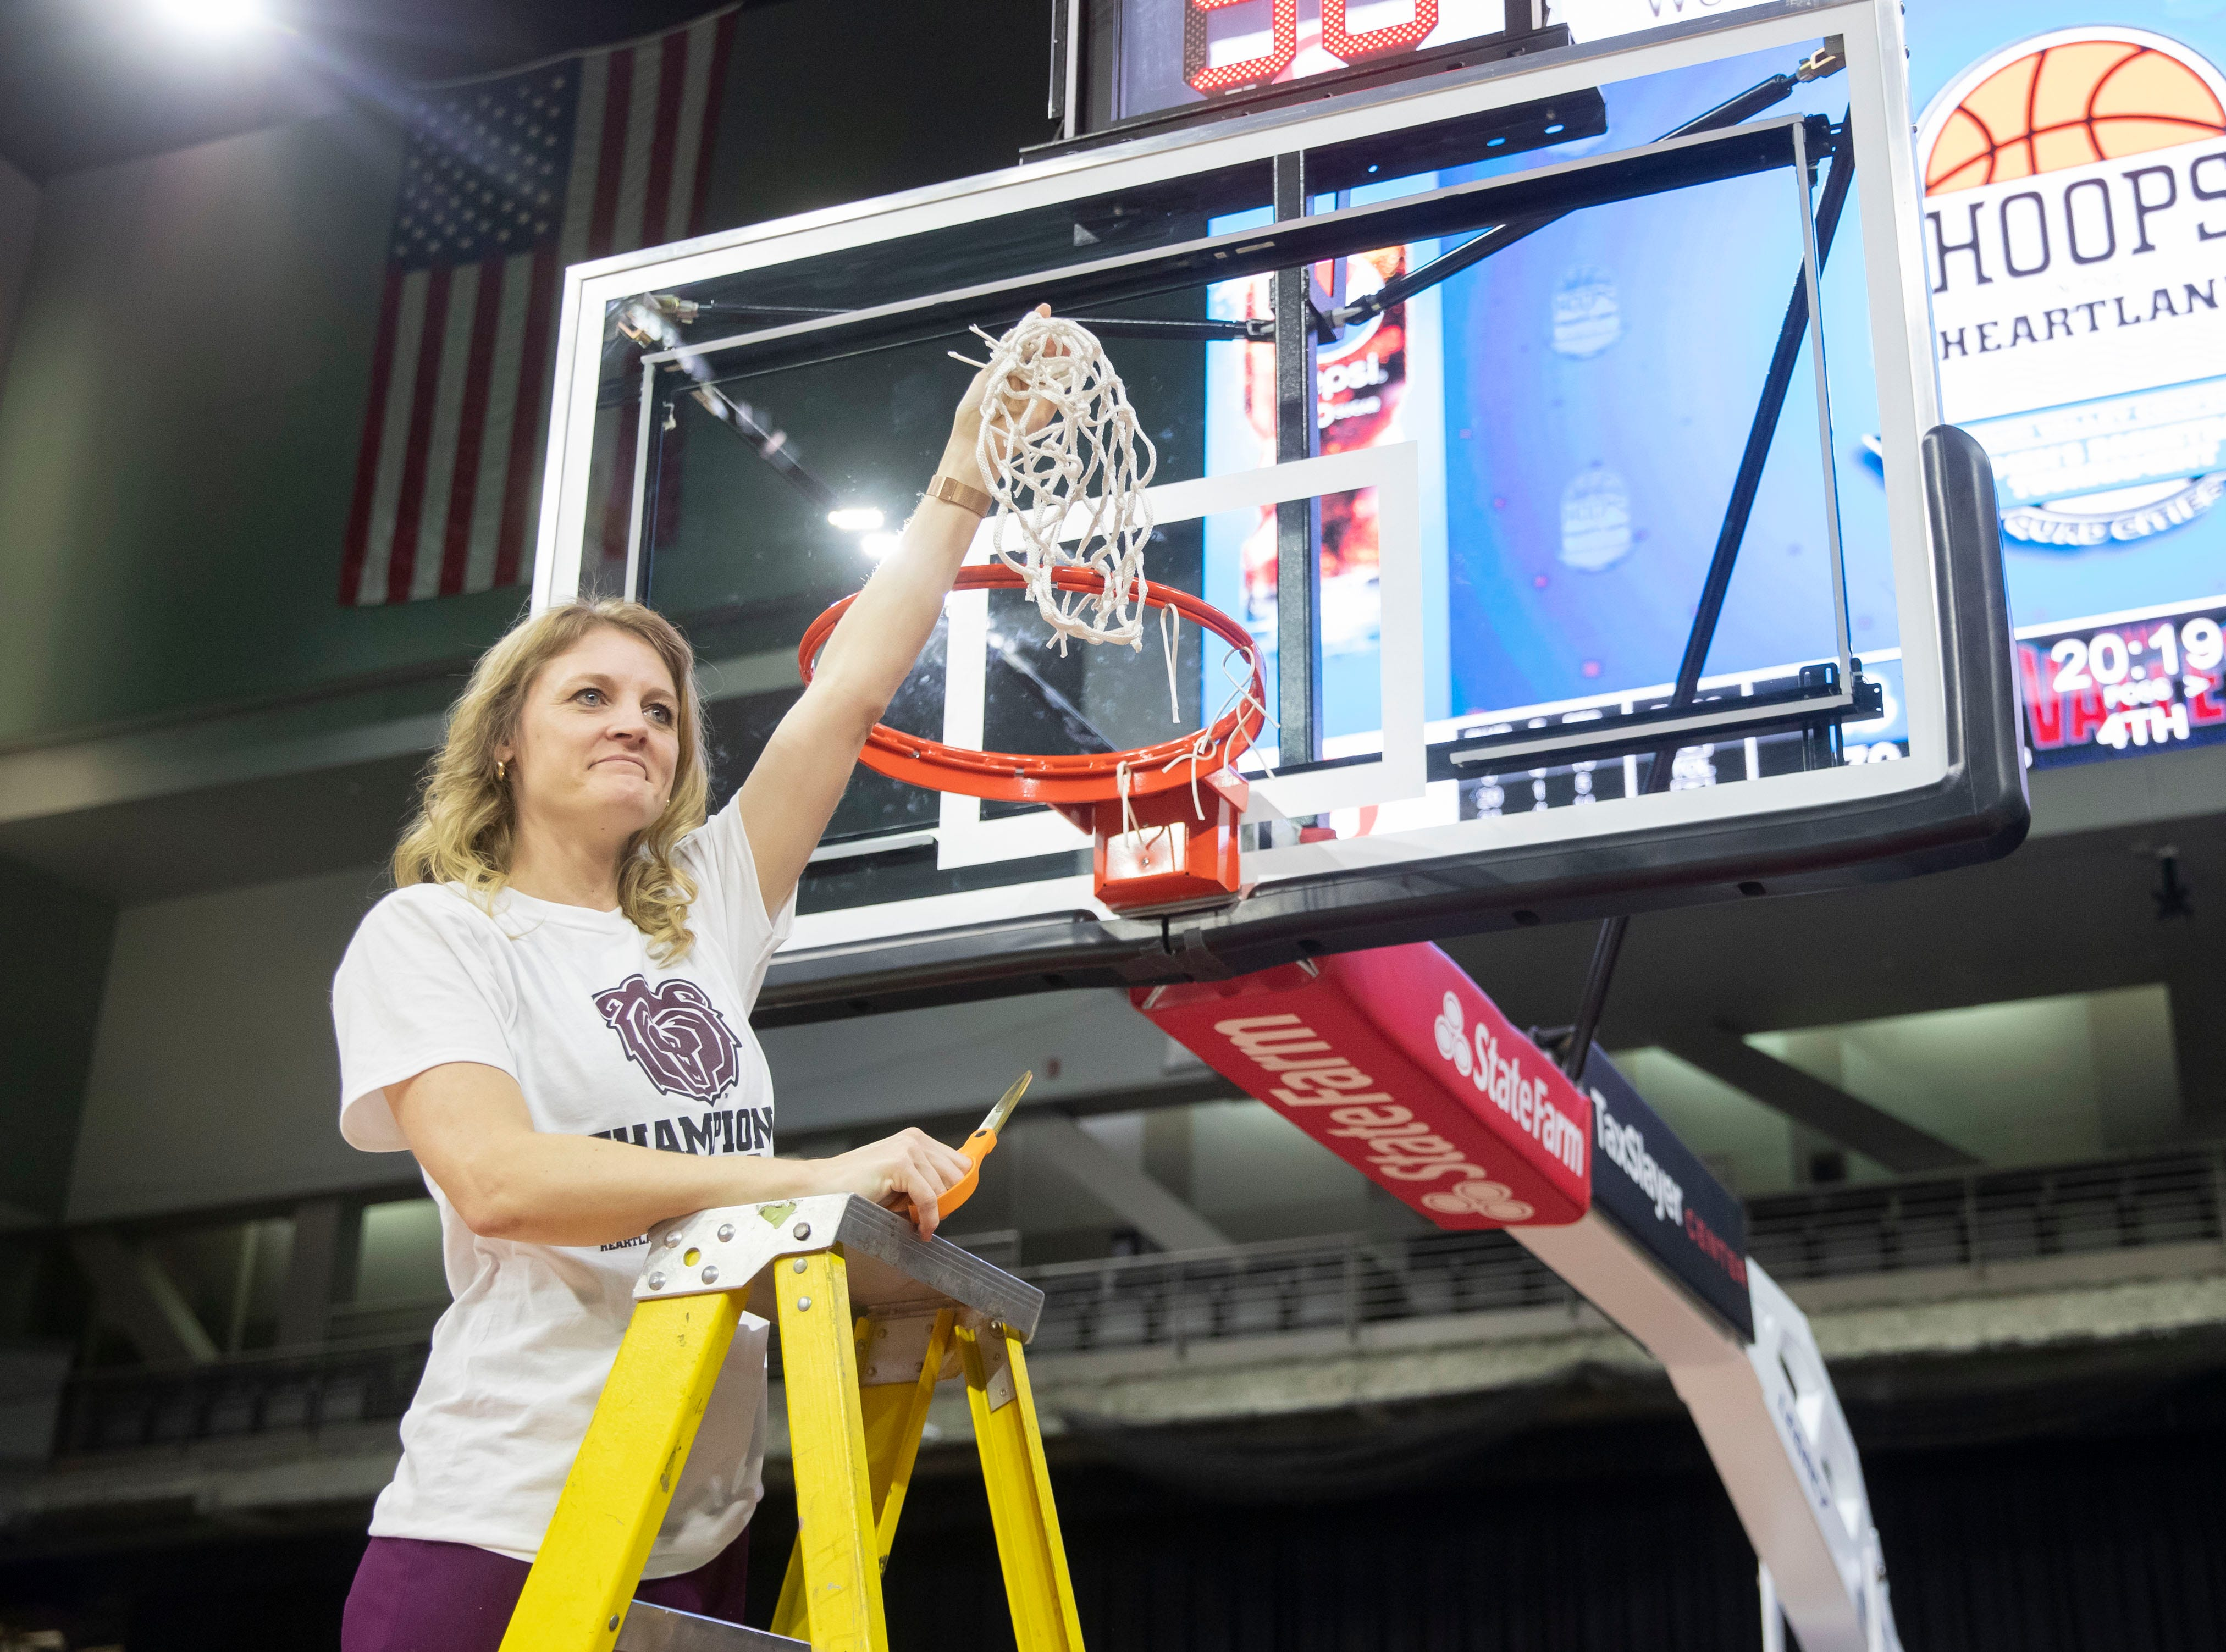 MSU head coach Kellie Harper cuts down the net after the Lady Bears defeated Drake in the final of the MVC Tournament in Moline, Ill. on Sunday, March 17, 2019.